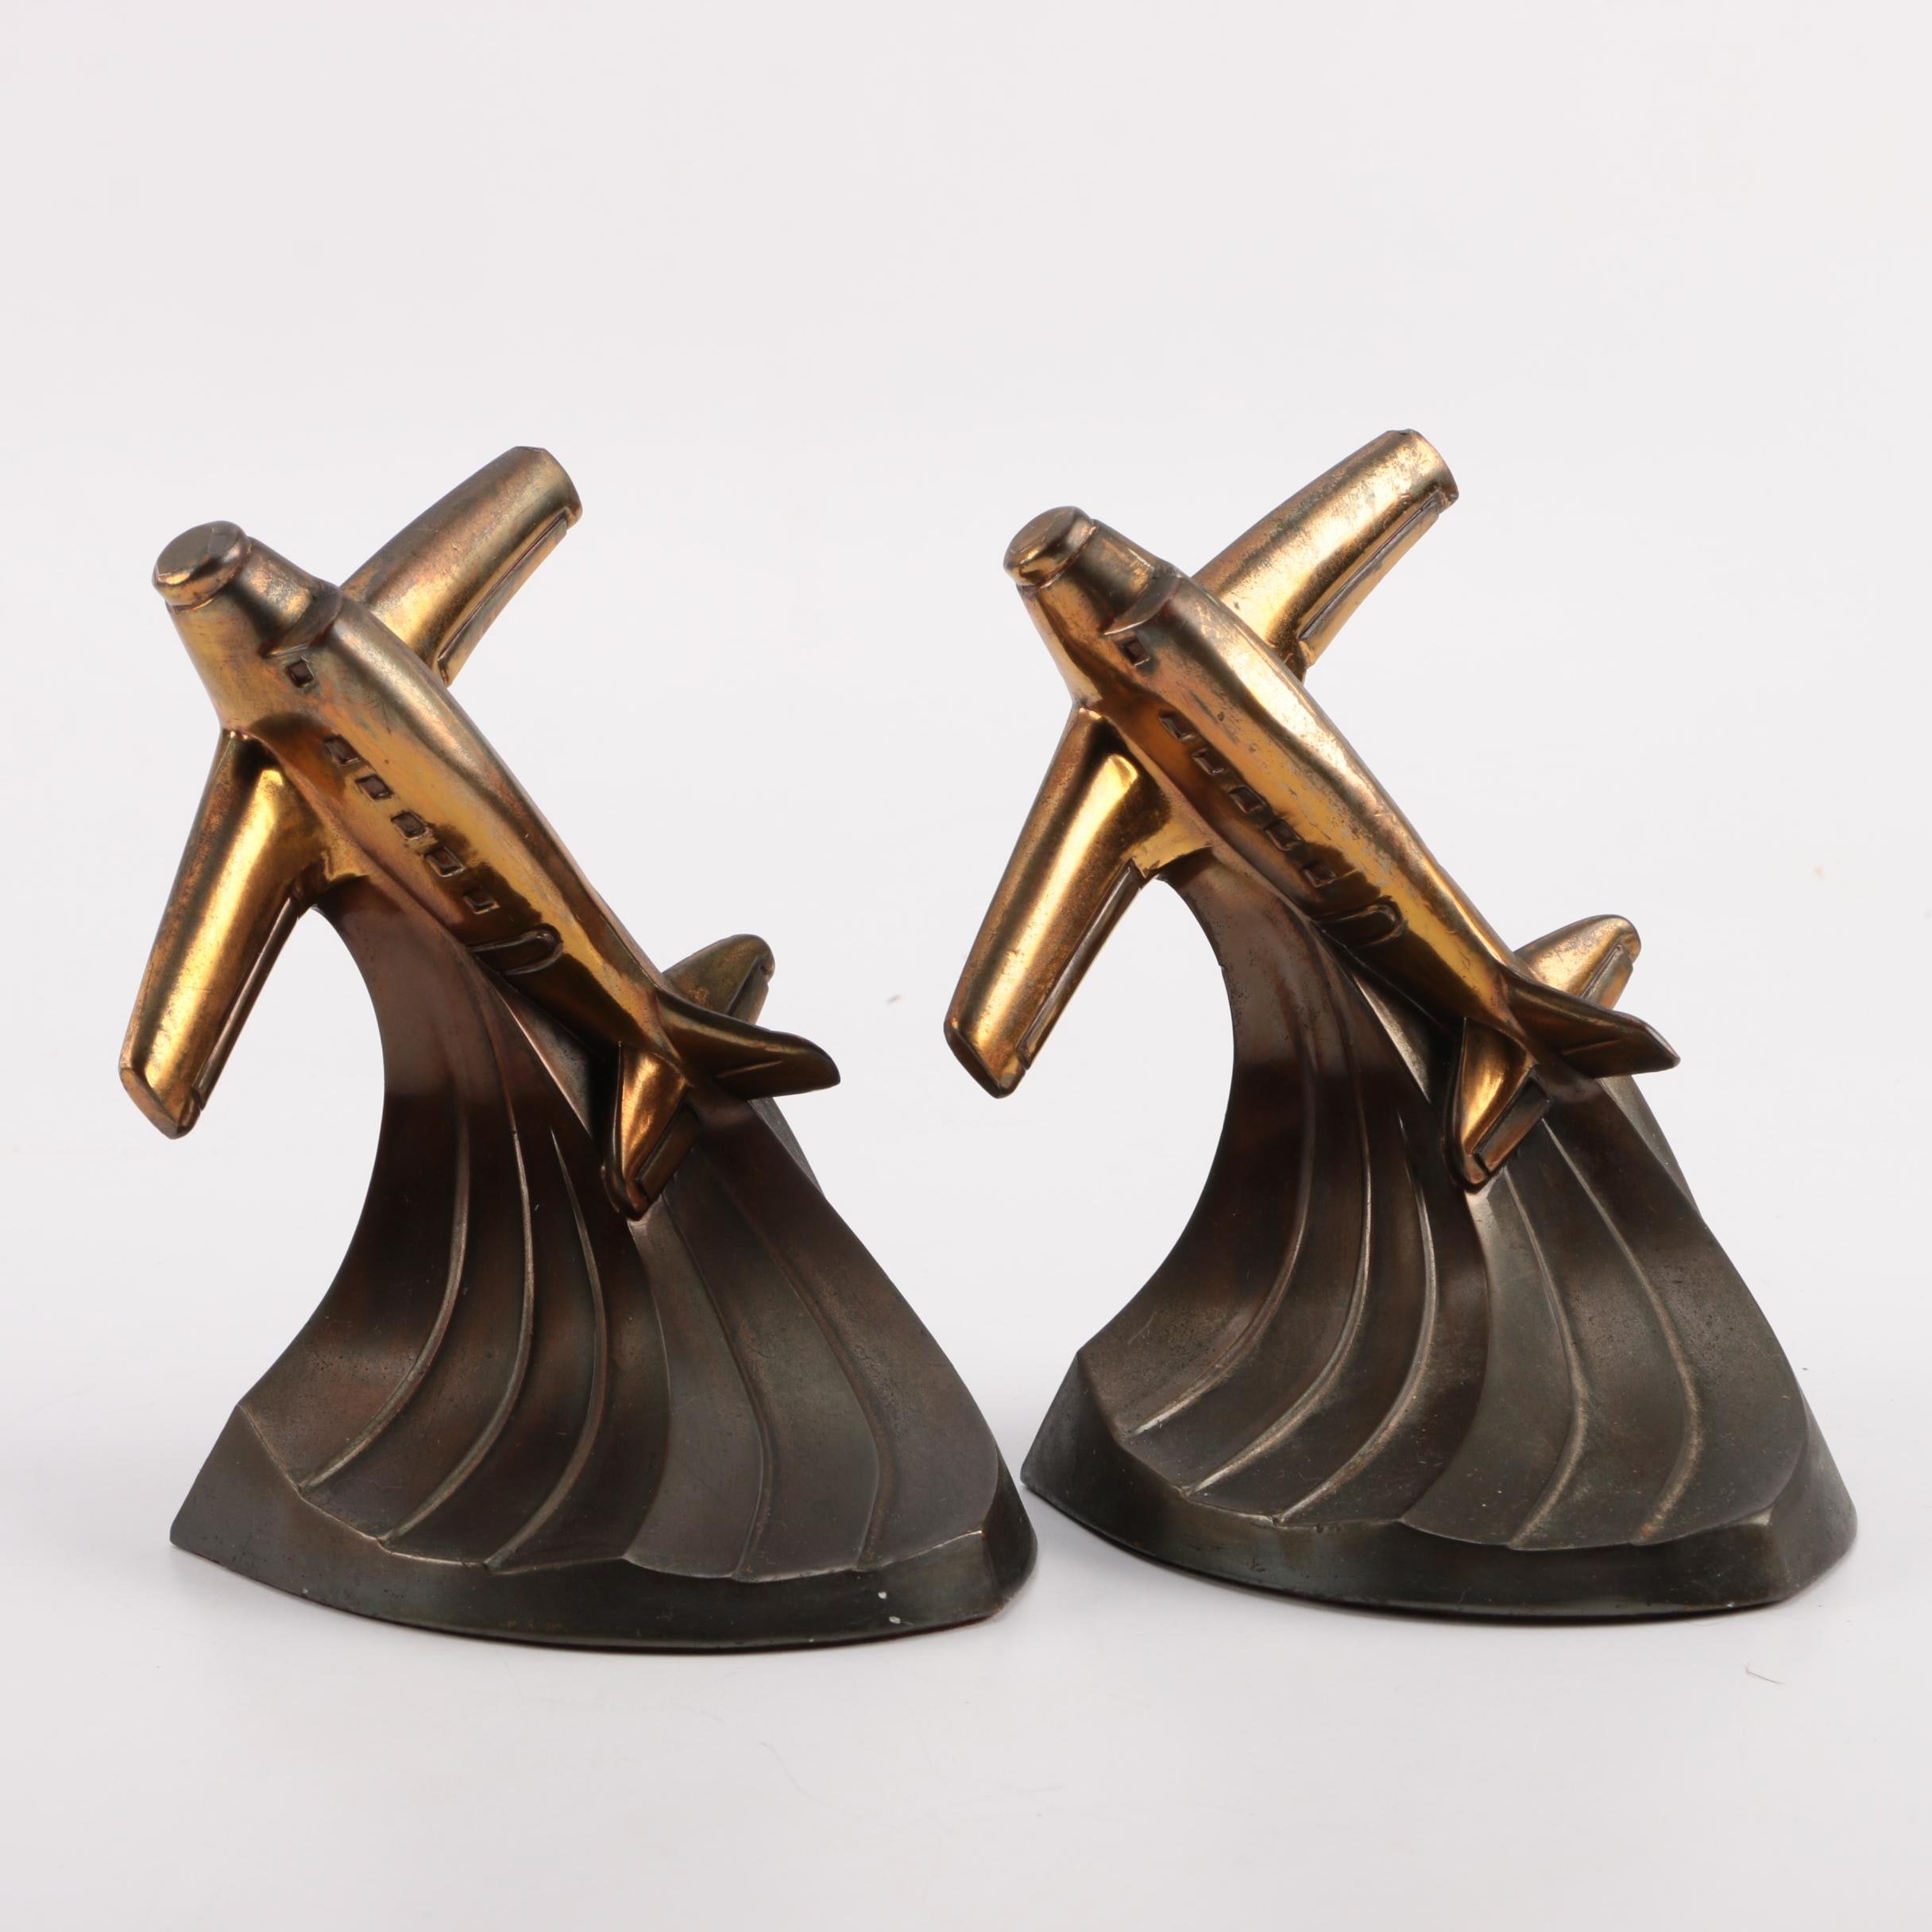 Art Deco Style Brass Figurative Airplane Bookends